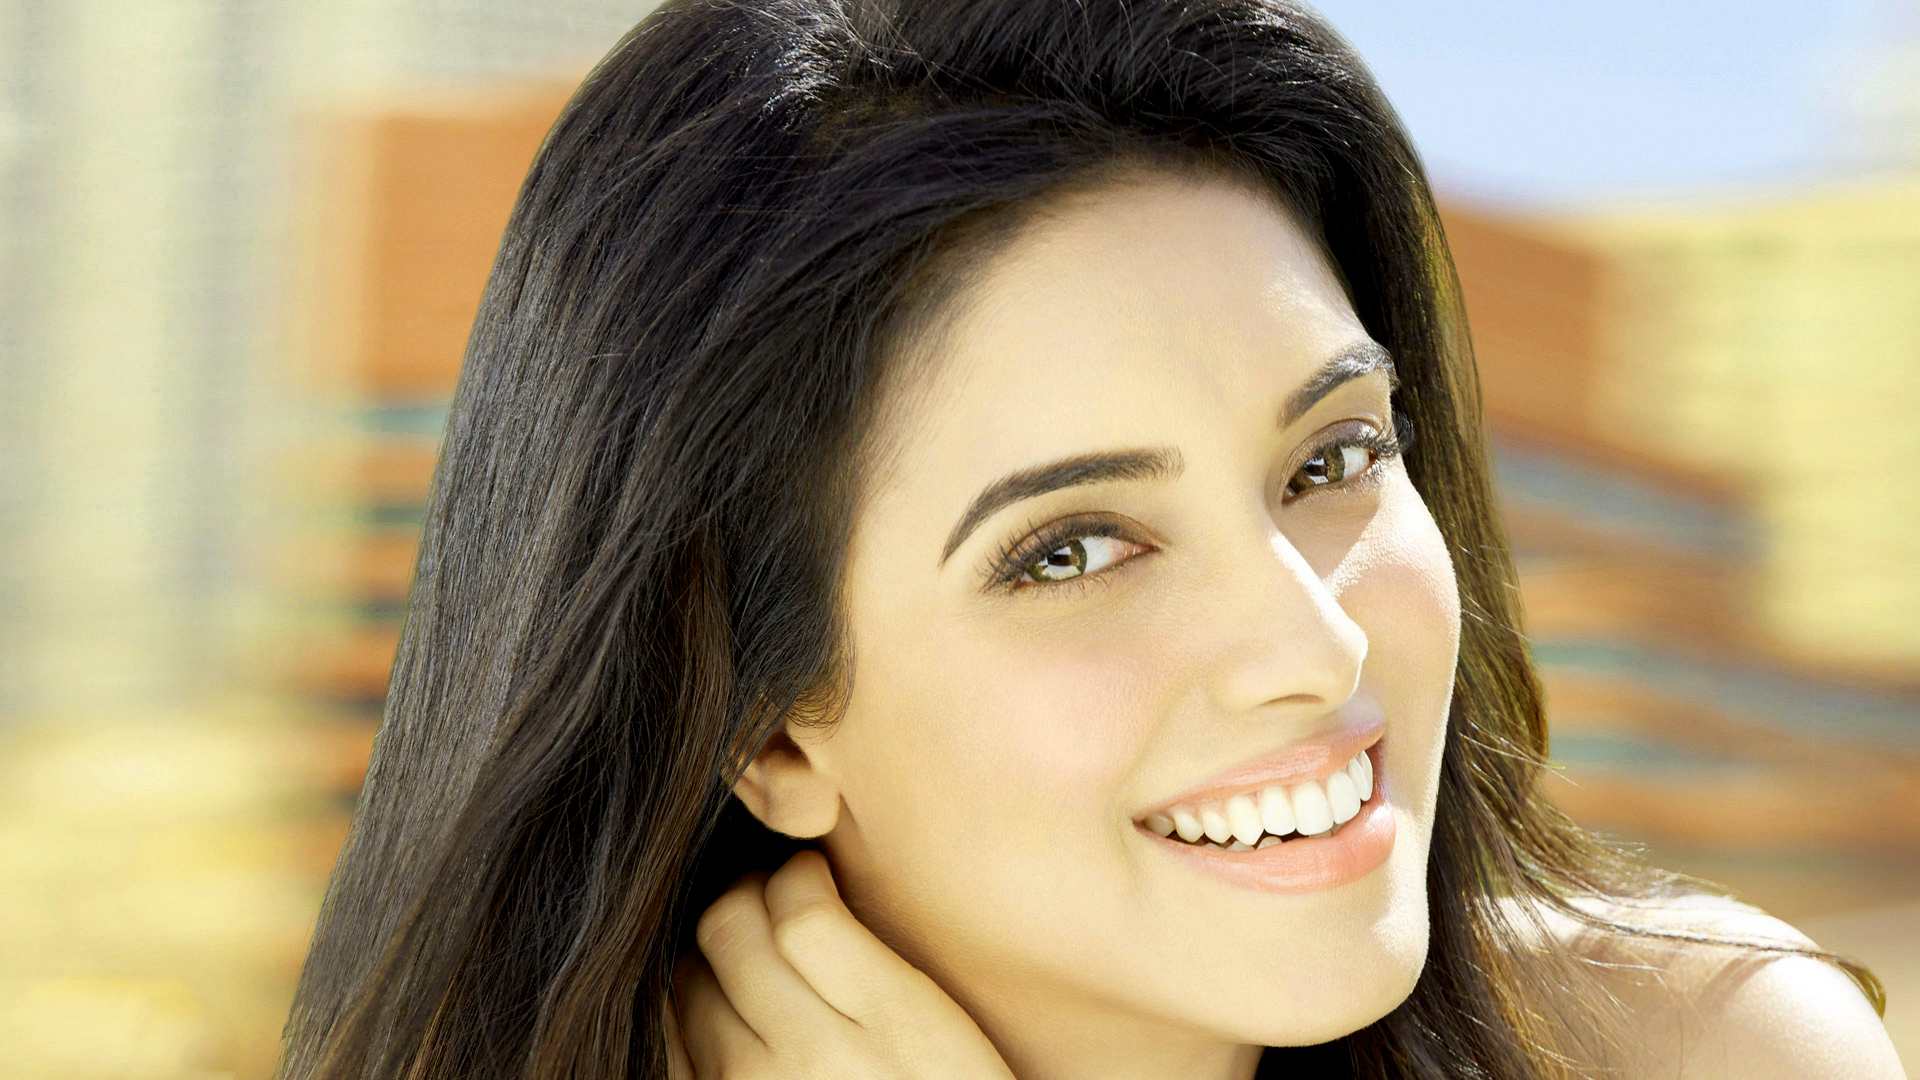 Asin images 1 (98)